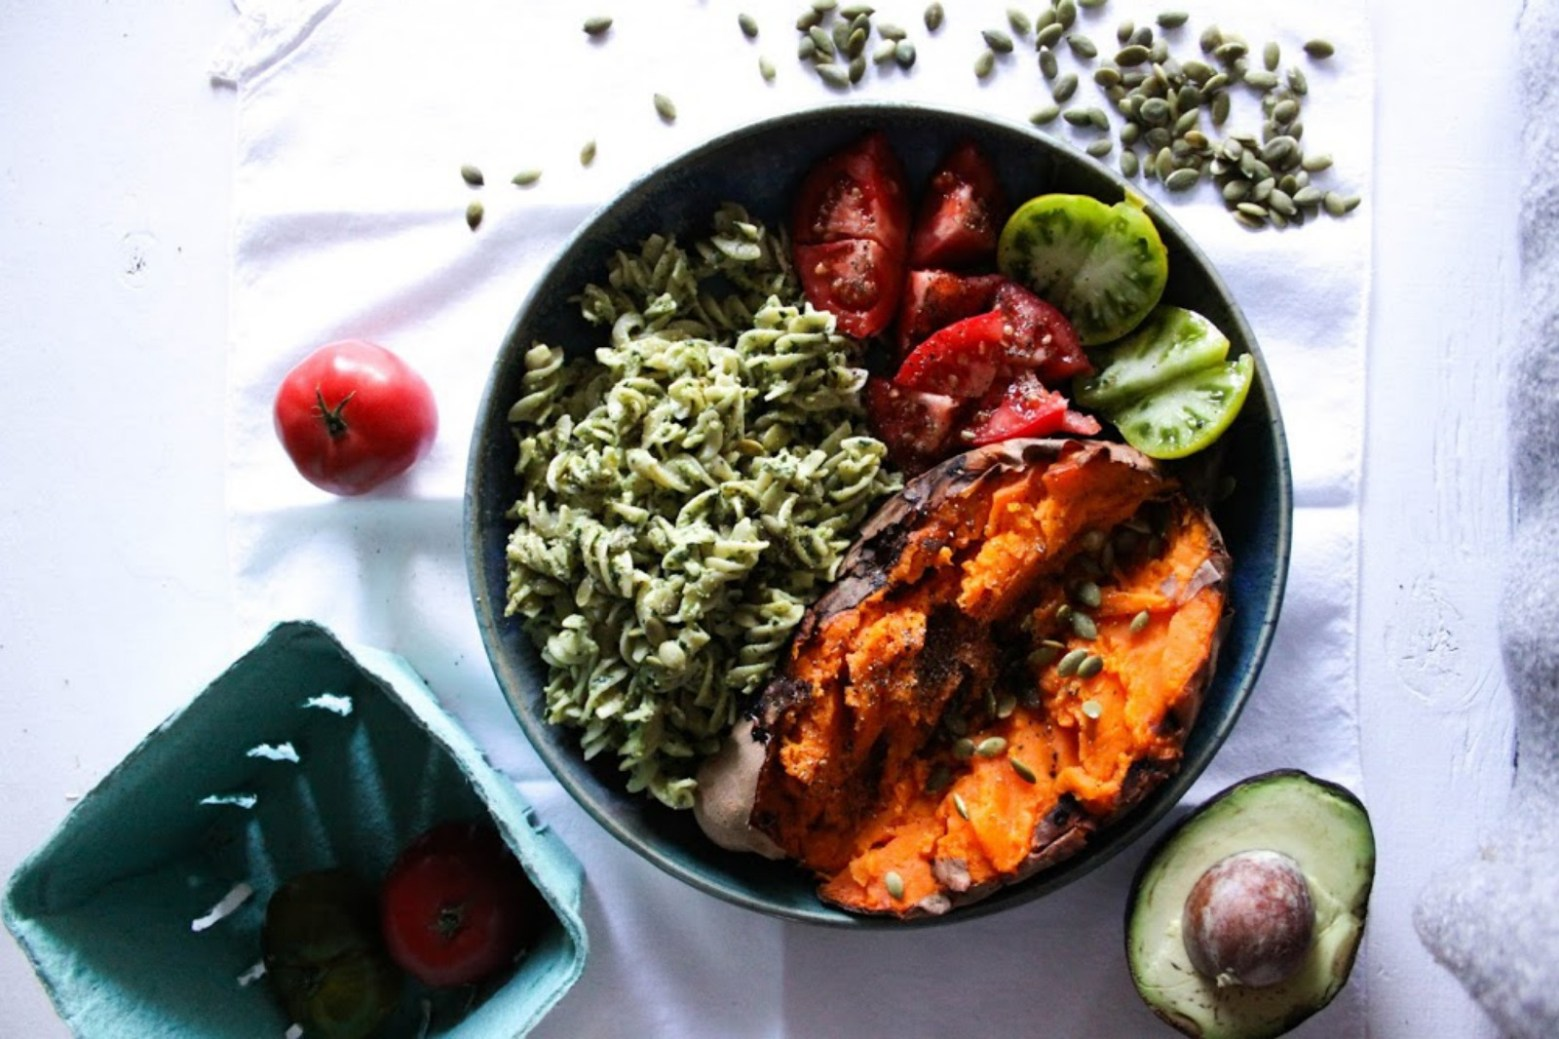 Baked Sweet Potato With Pesto Pasta, Tomatoes, and Pumpkin Seeds